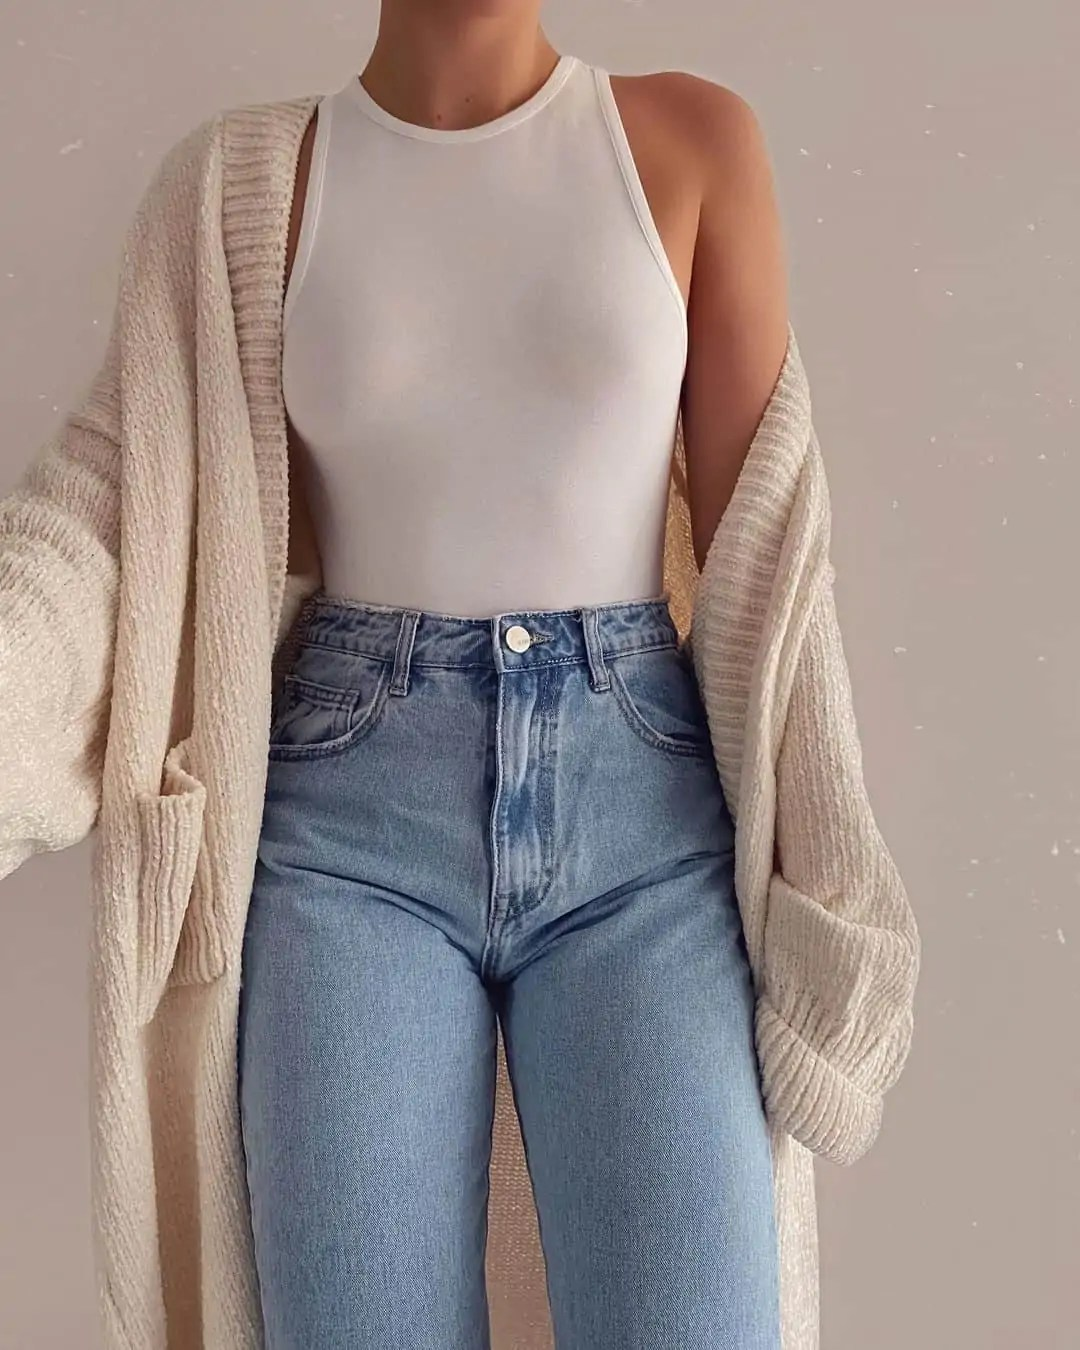 100+ Outfits to Inspire your next shopping haul 97